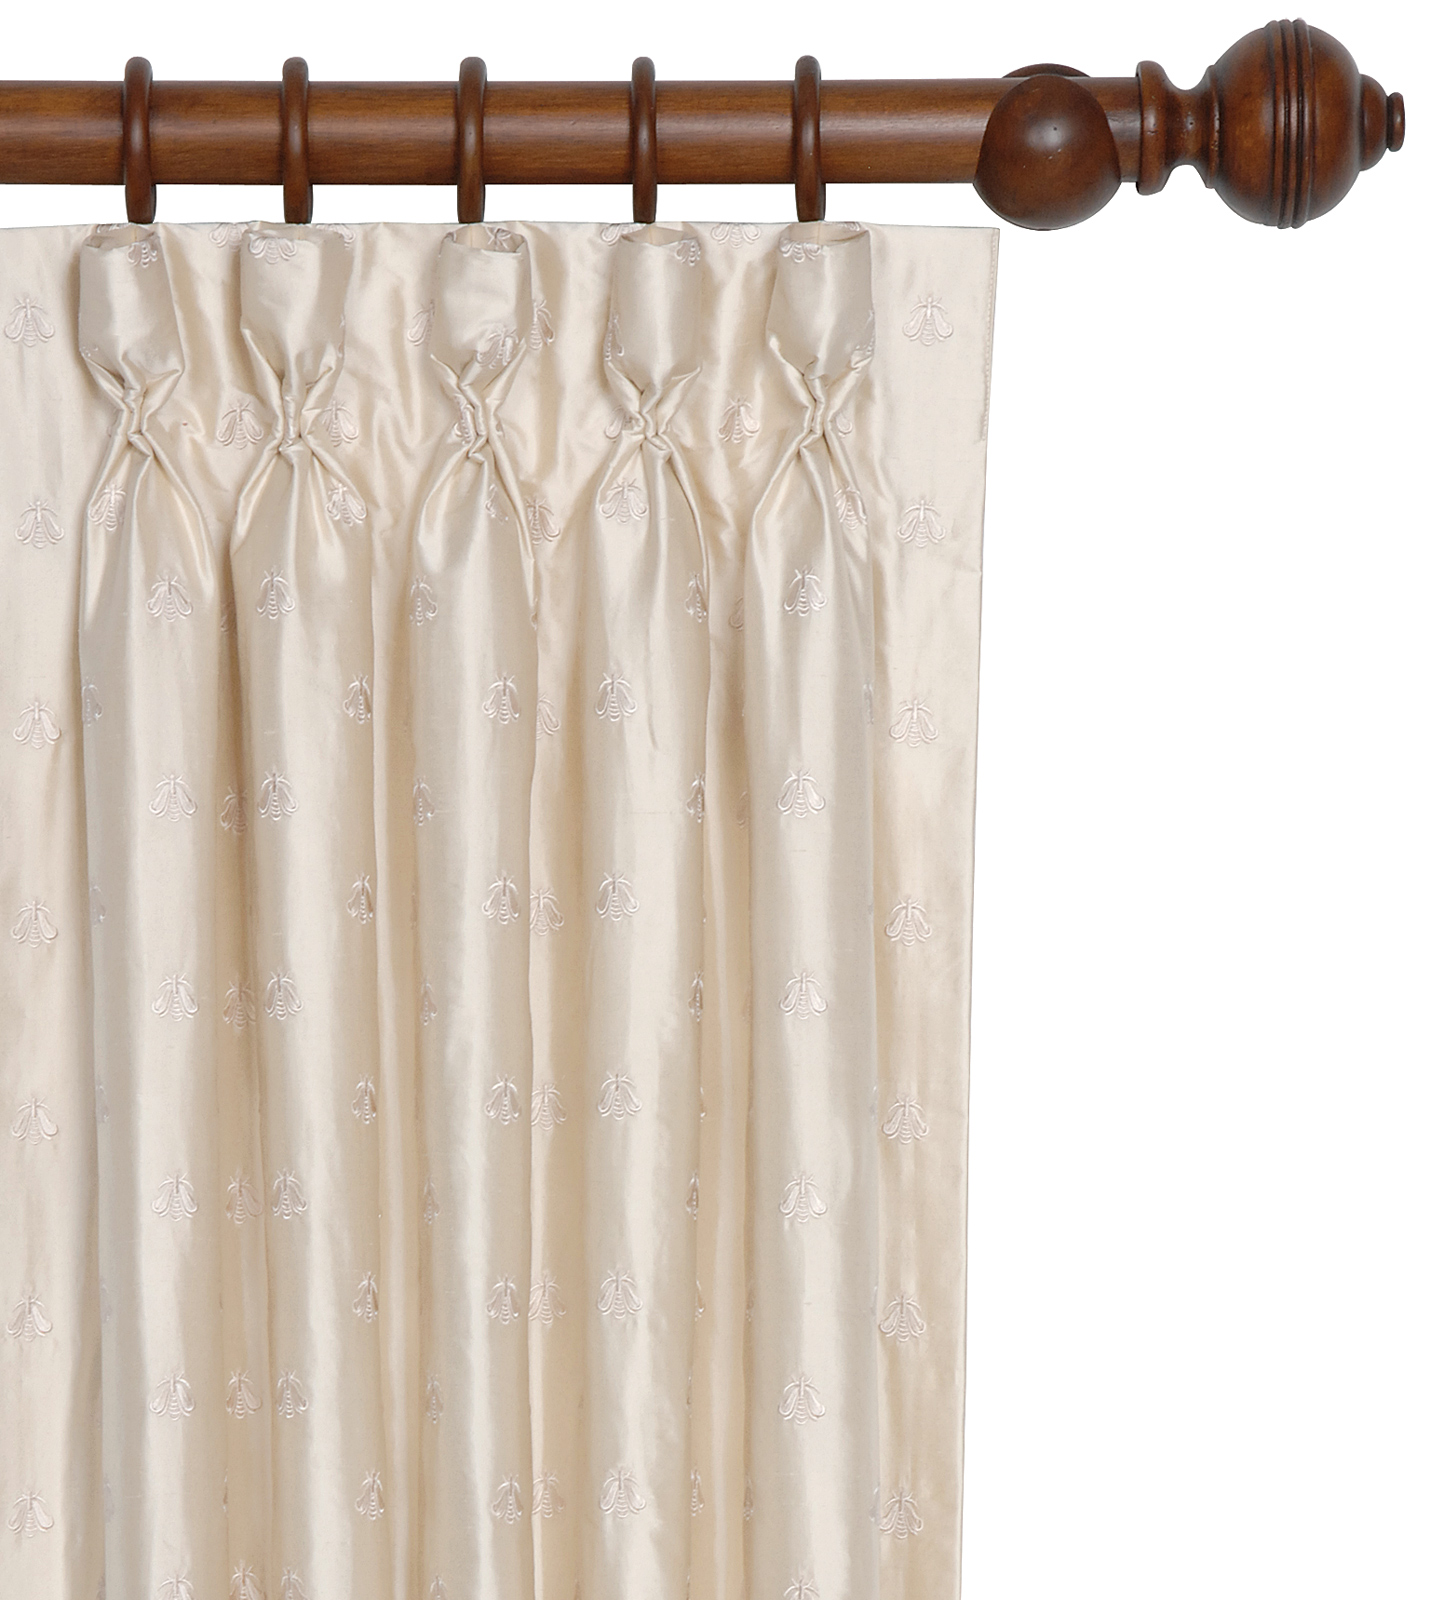 28 Hang Curtains The Long And Short Of It How To